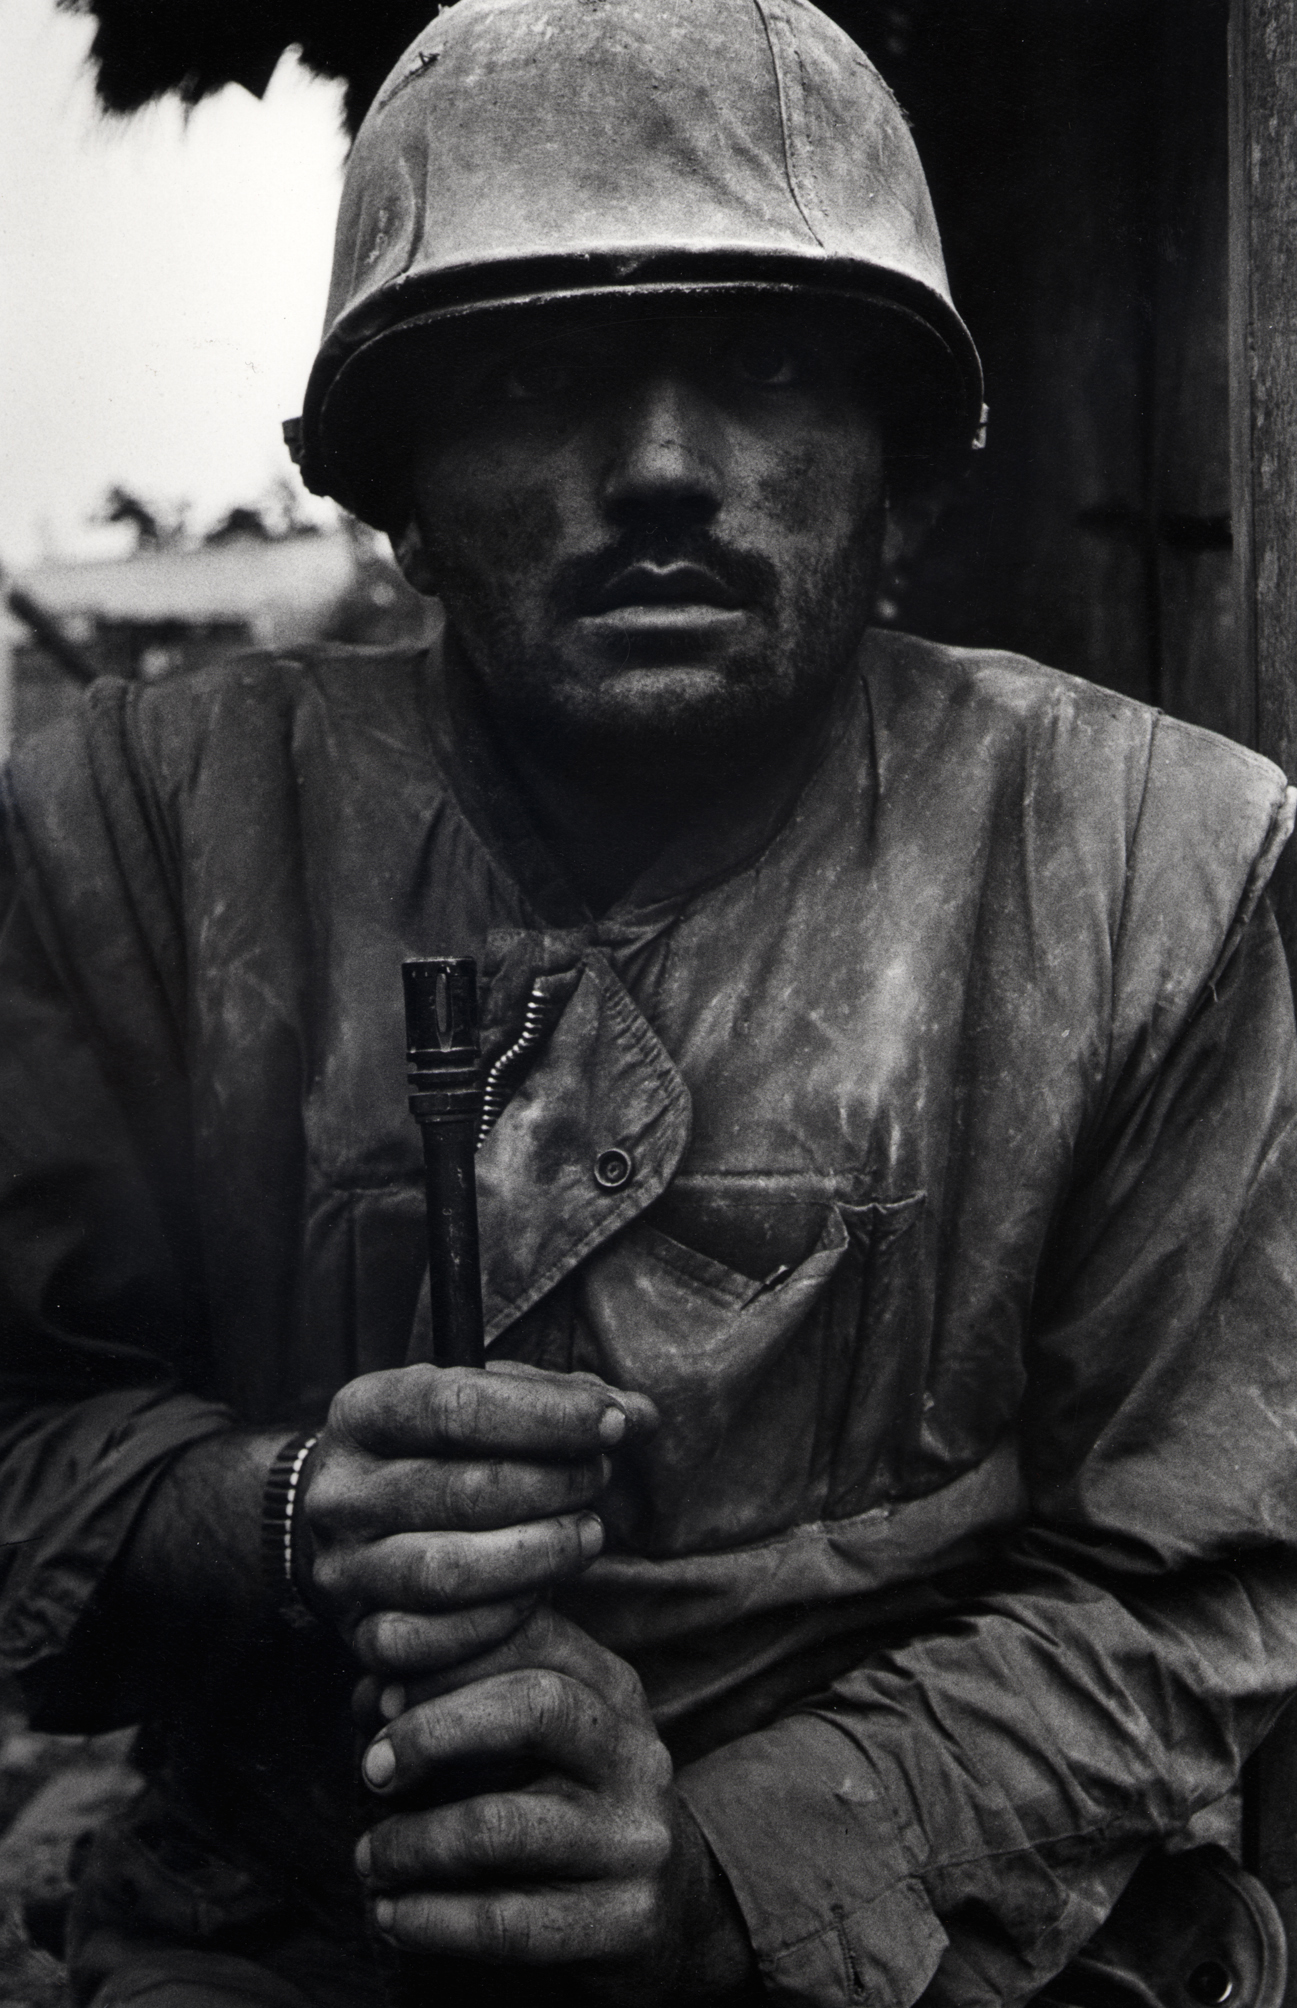 Don McCullin Shell Shocked US Marine, Vietnam, Hue 1968, printed 2013 © Don McCullin